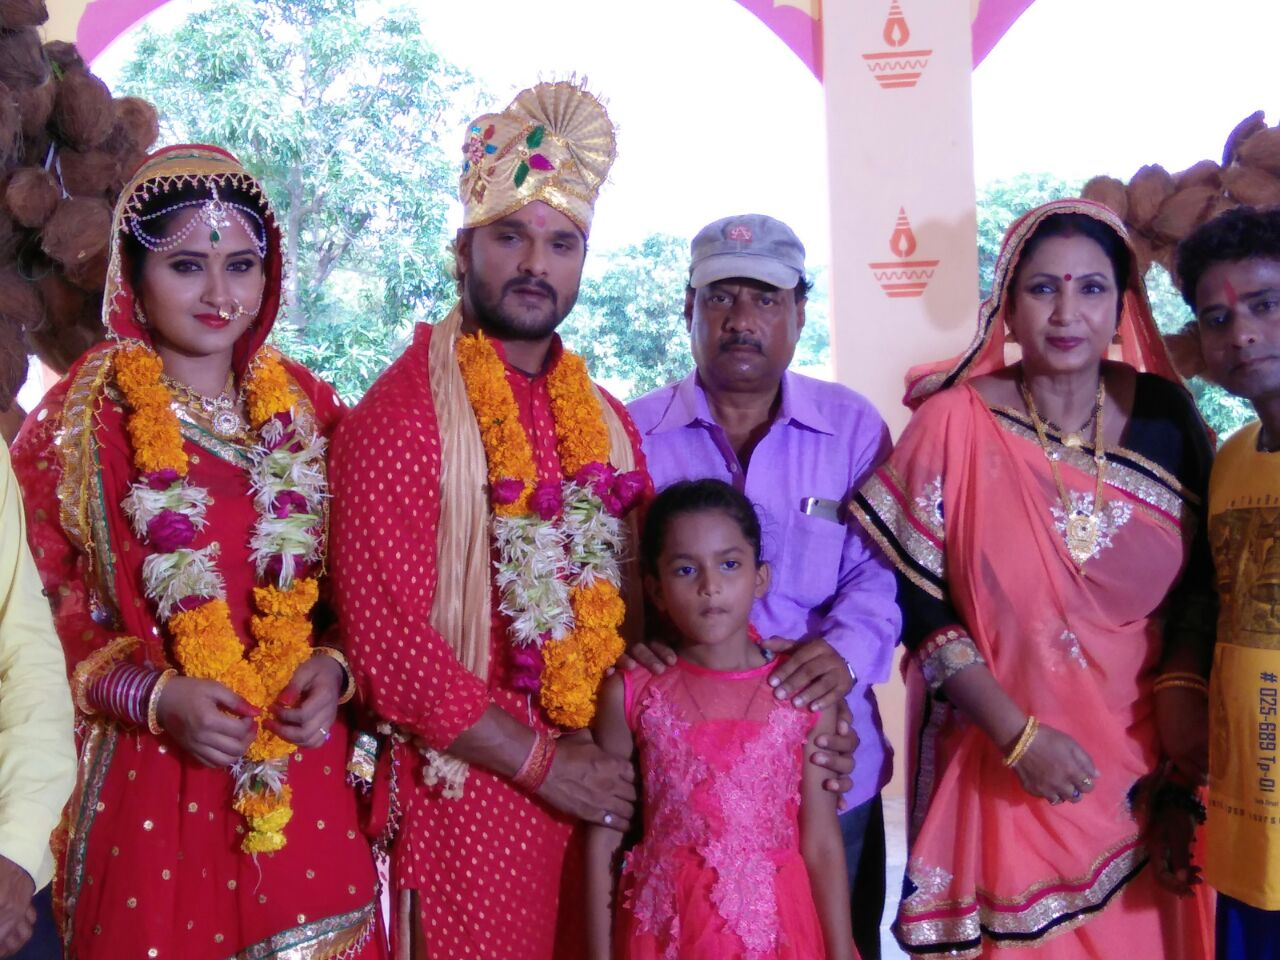 Kajal Raghwani and Khesari Lal Yadav Dulhan Ganga Paar Ke Bhojpuri Movie Shooting stills, Dulhan Ganga Paar Ke Bhandar Bhojpuri Movie